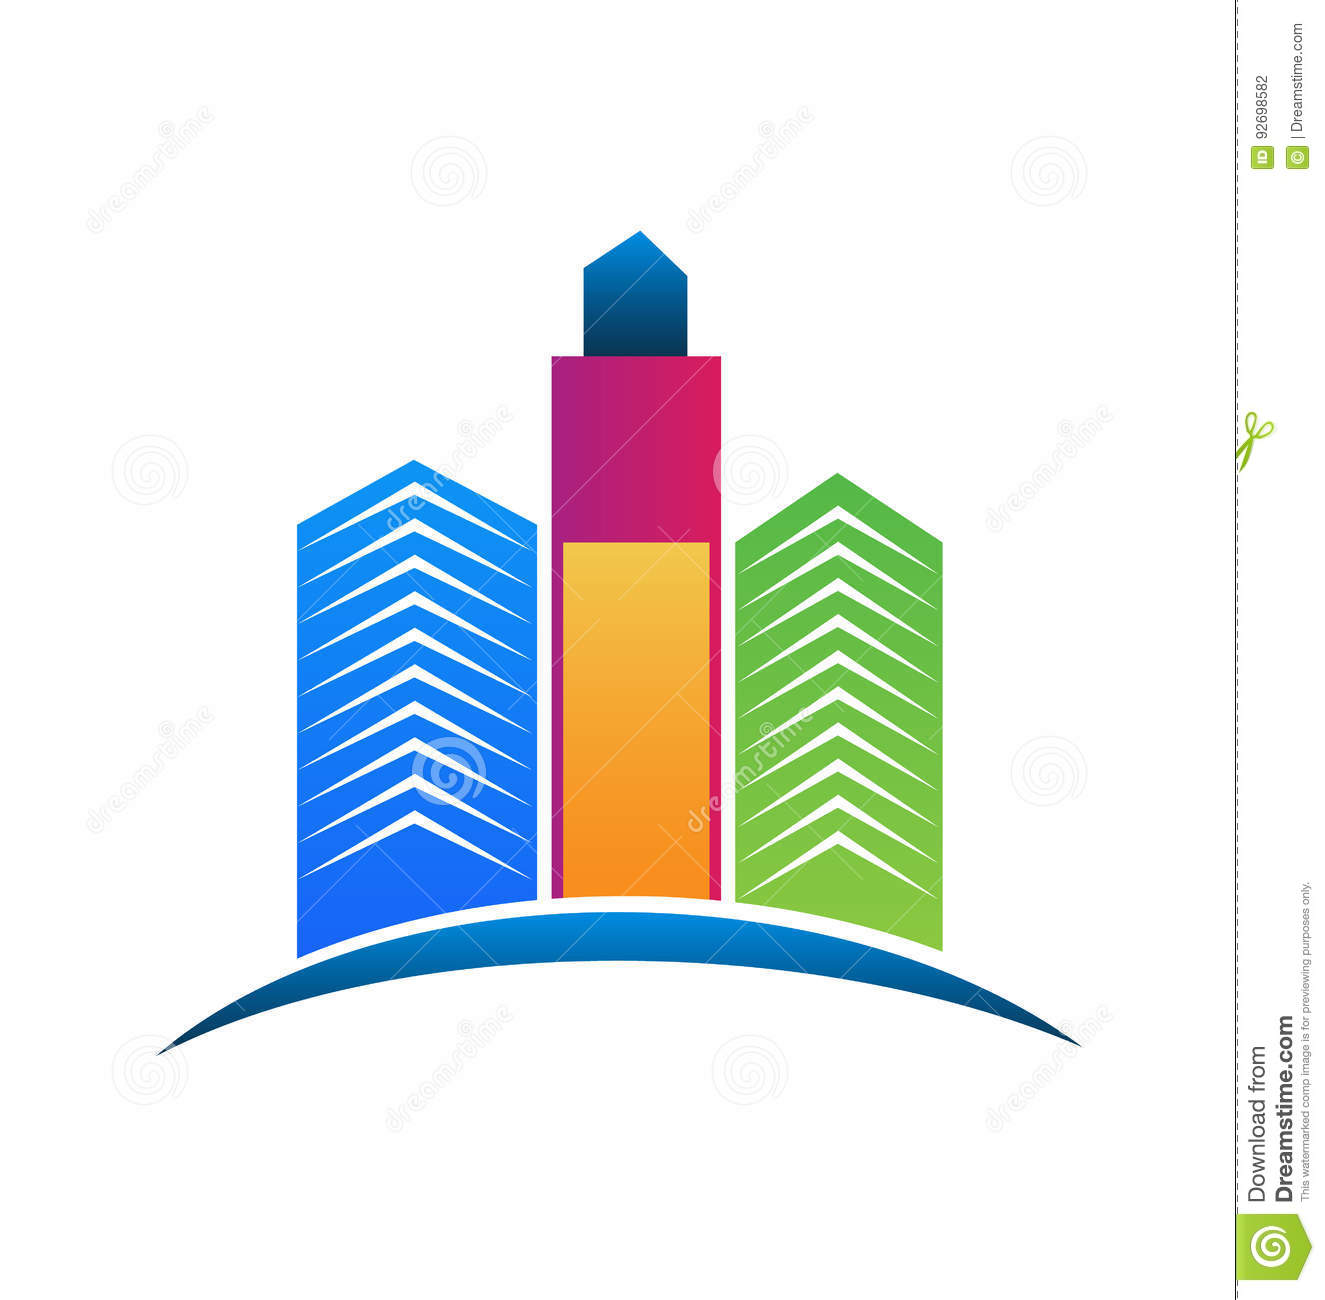 logo colorful real estate city buildings stock vector illustration rh dreamstime com building brochure design vector free download building logo vector design